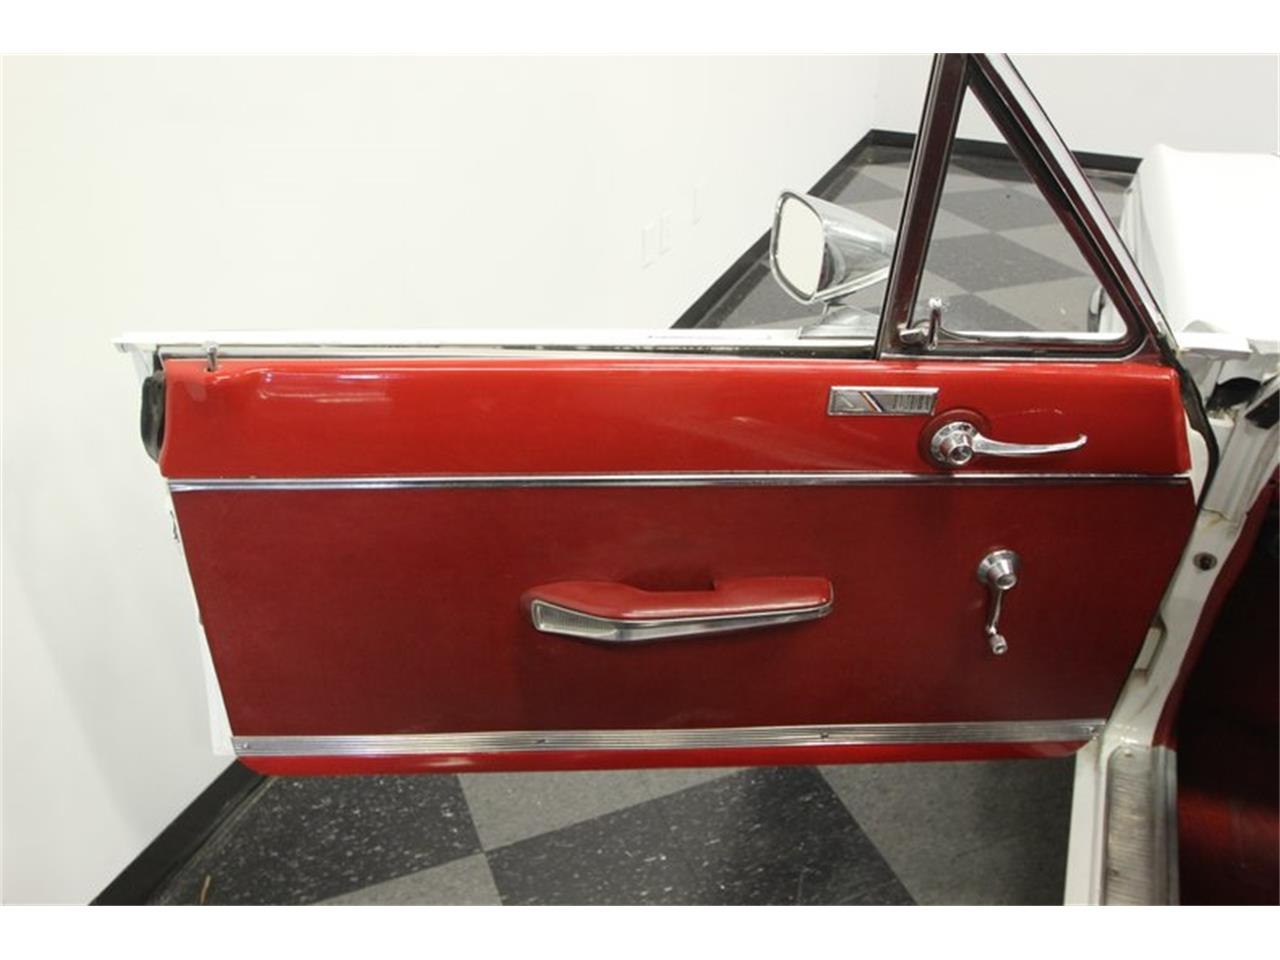 Large Picture of Classic '64 Ford Falcon located in Lutz Florida - $18,995.00 - Q6M2